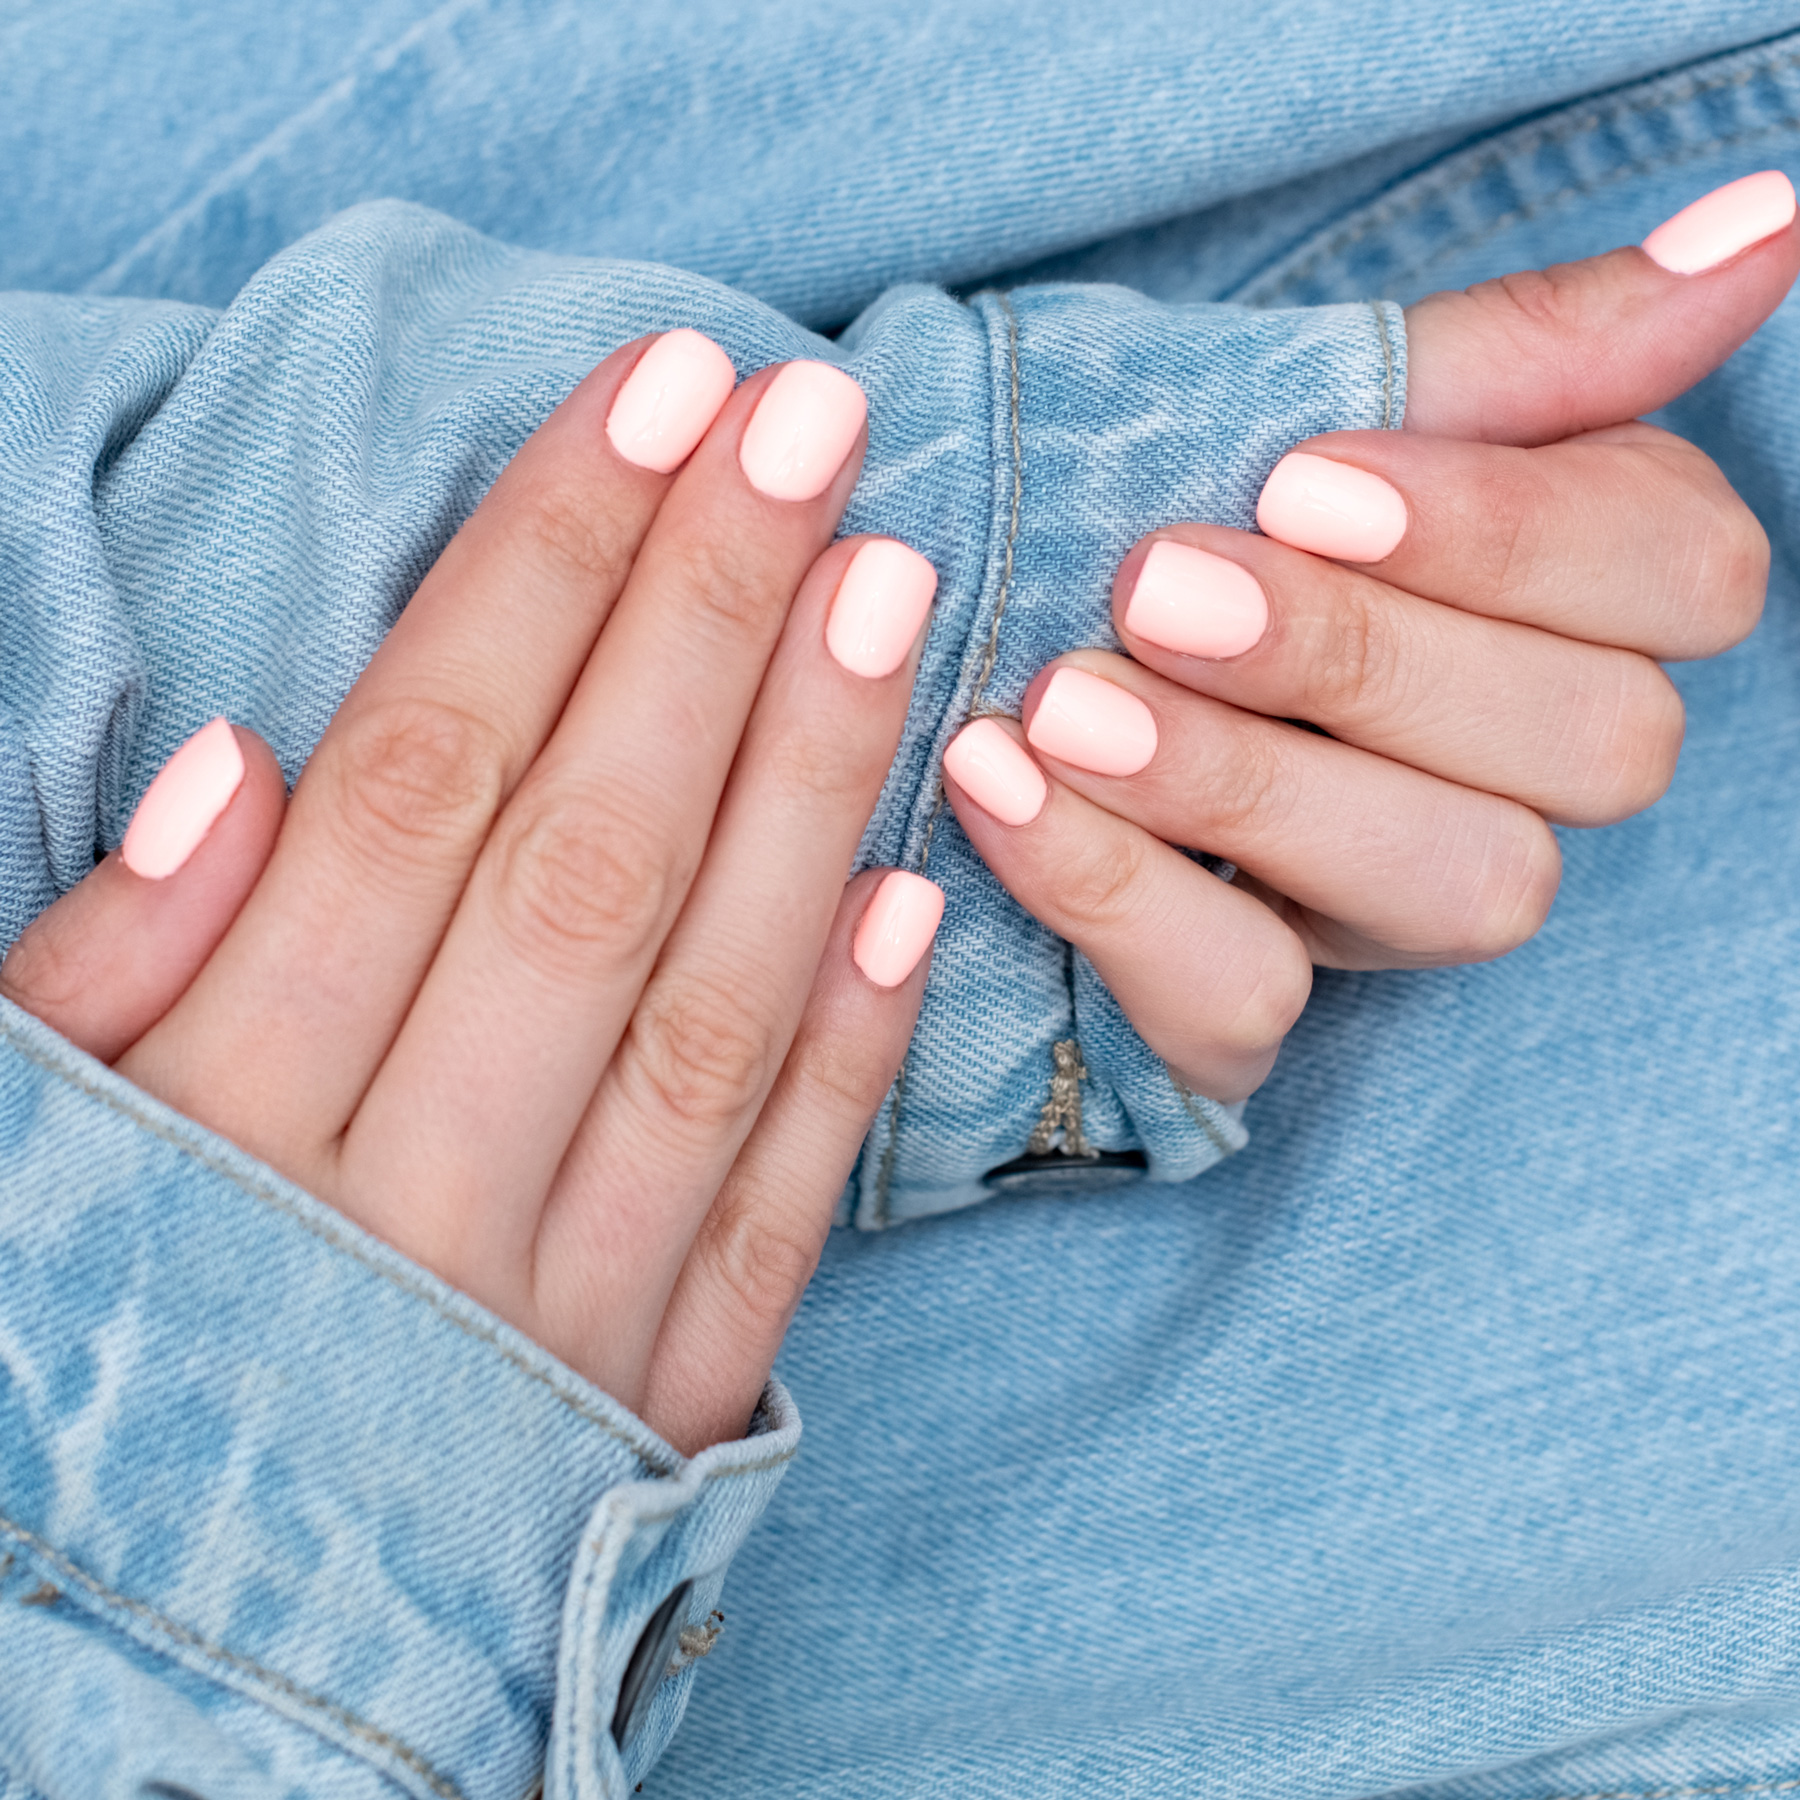 How to break bad habits (biting nails), close up shot of woman with manicure